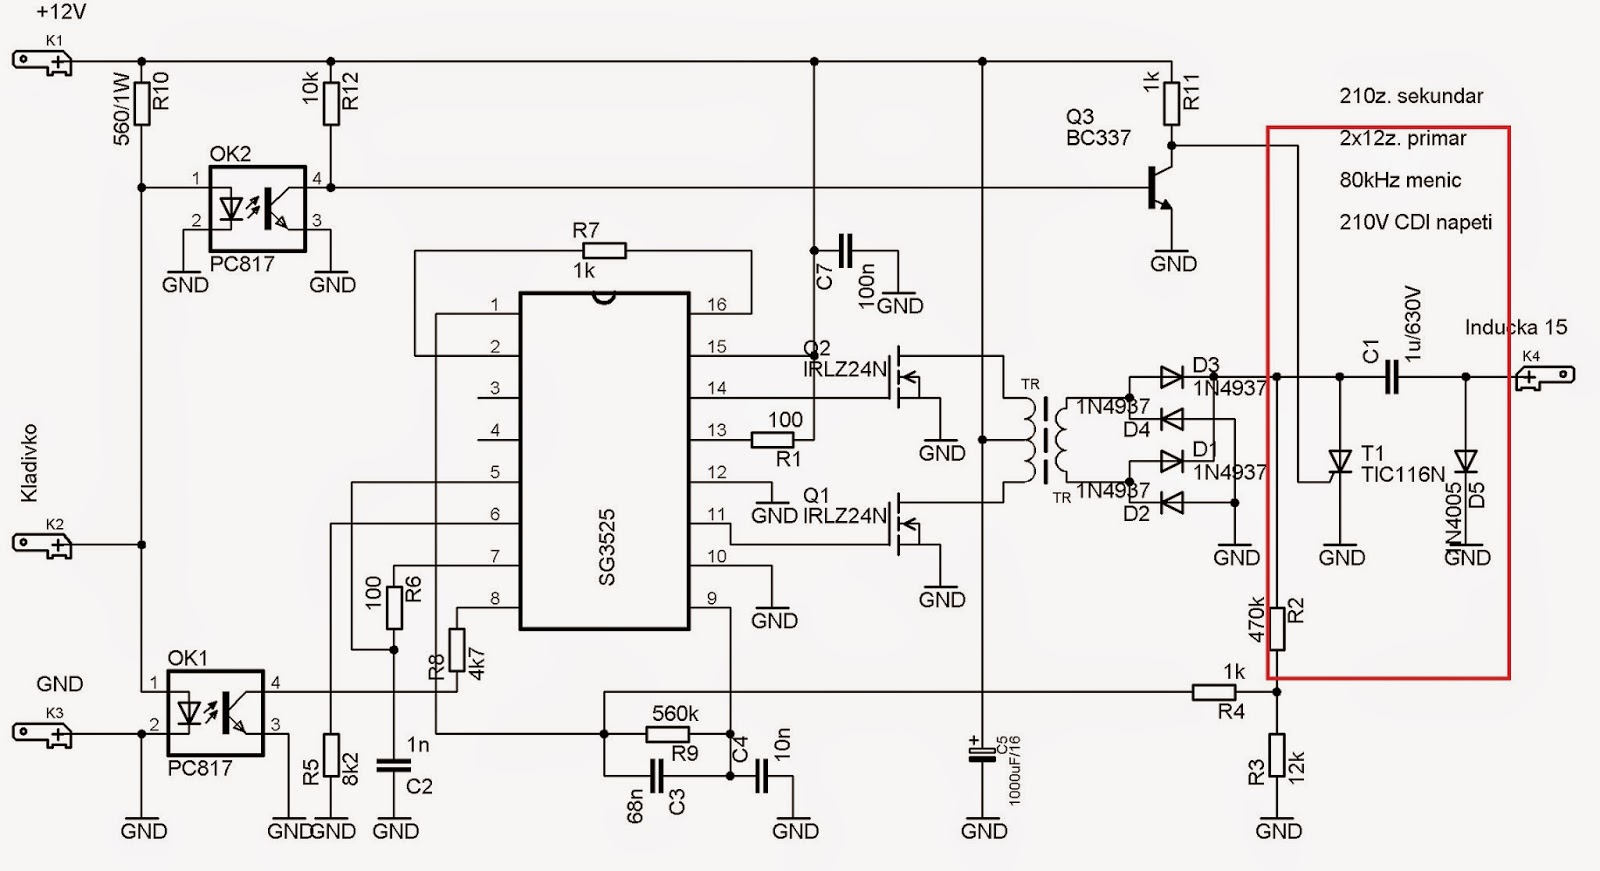 scooter cdi diagram, cdi ignition diagram, cdi installation diagram, 5 pin cdi wire diagram, kill switch diagram, cdi tester diagram, suzuki cdi diagram, five wire cdi diagram, on dc cdi wiring diagram